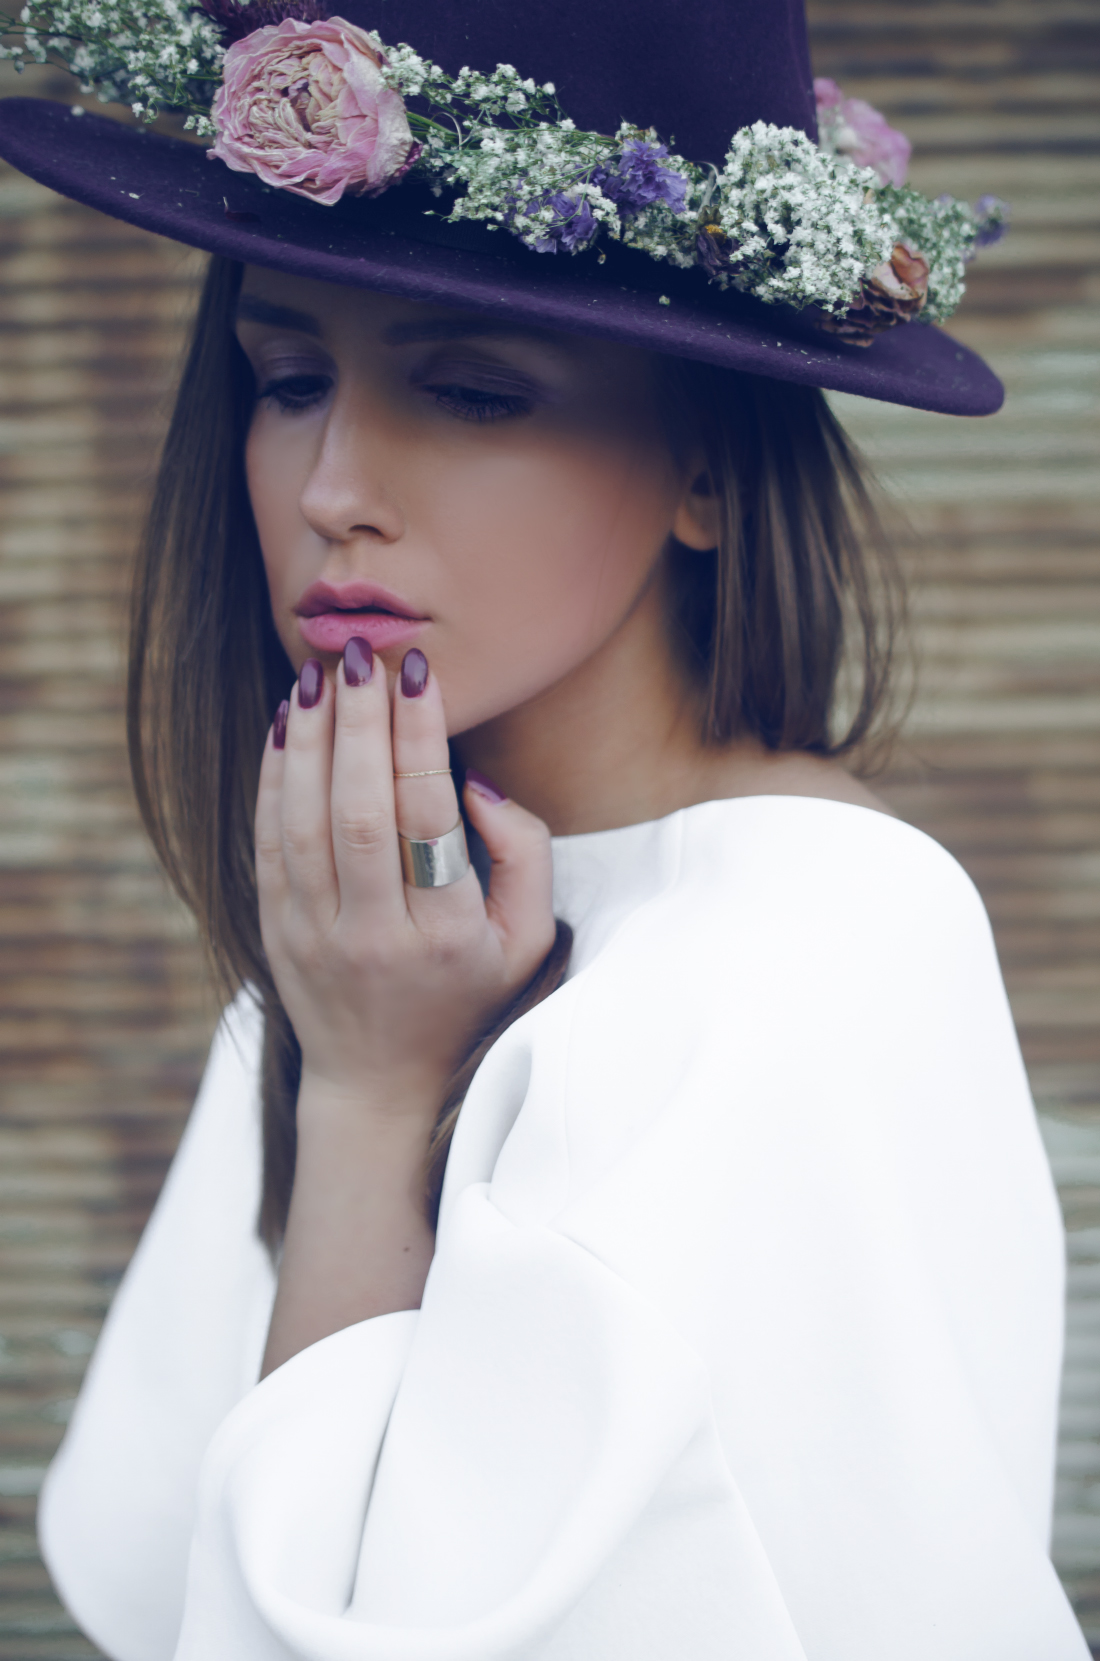 Flower Hat - Hut Inspiration - Fall Winter 2014-2015 - Fleur de Mode - Hristina Micevska